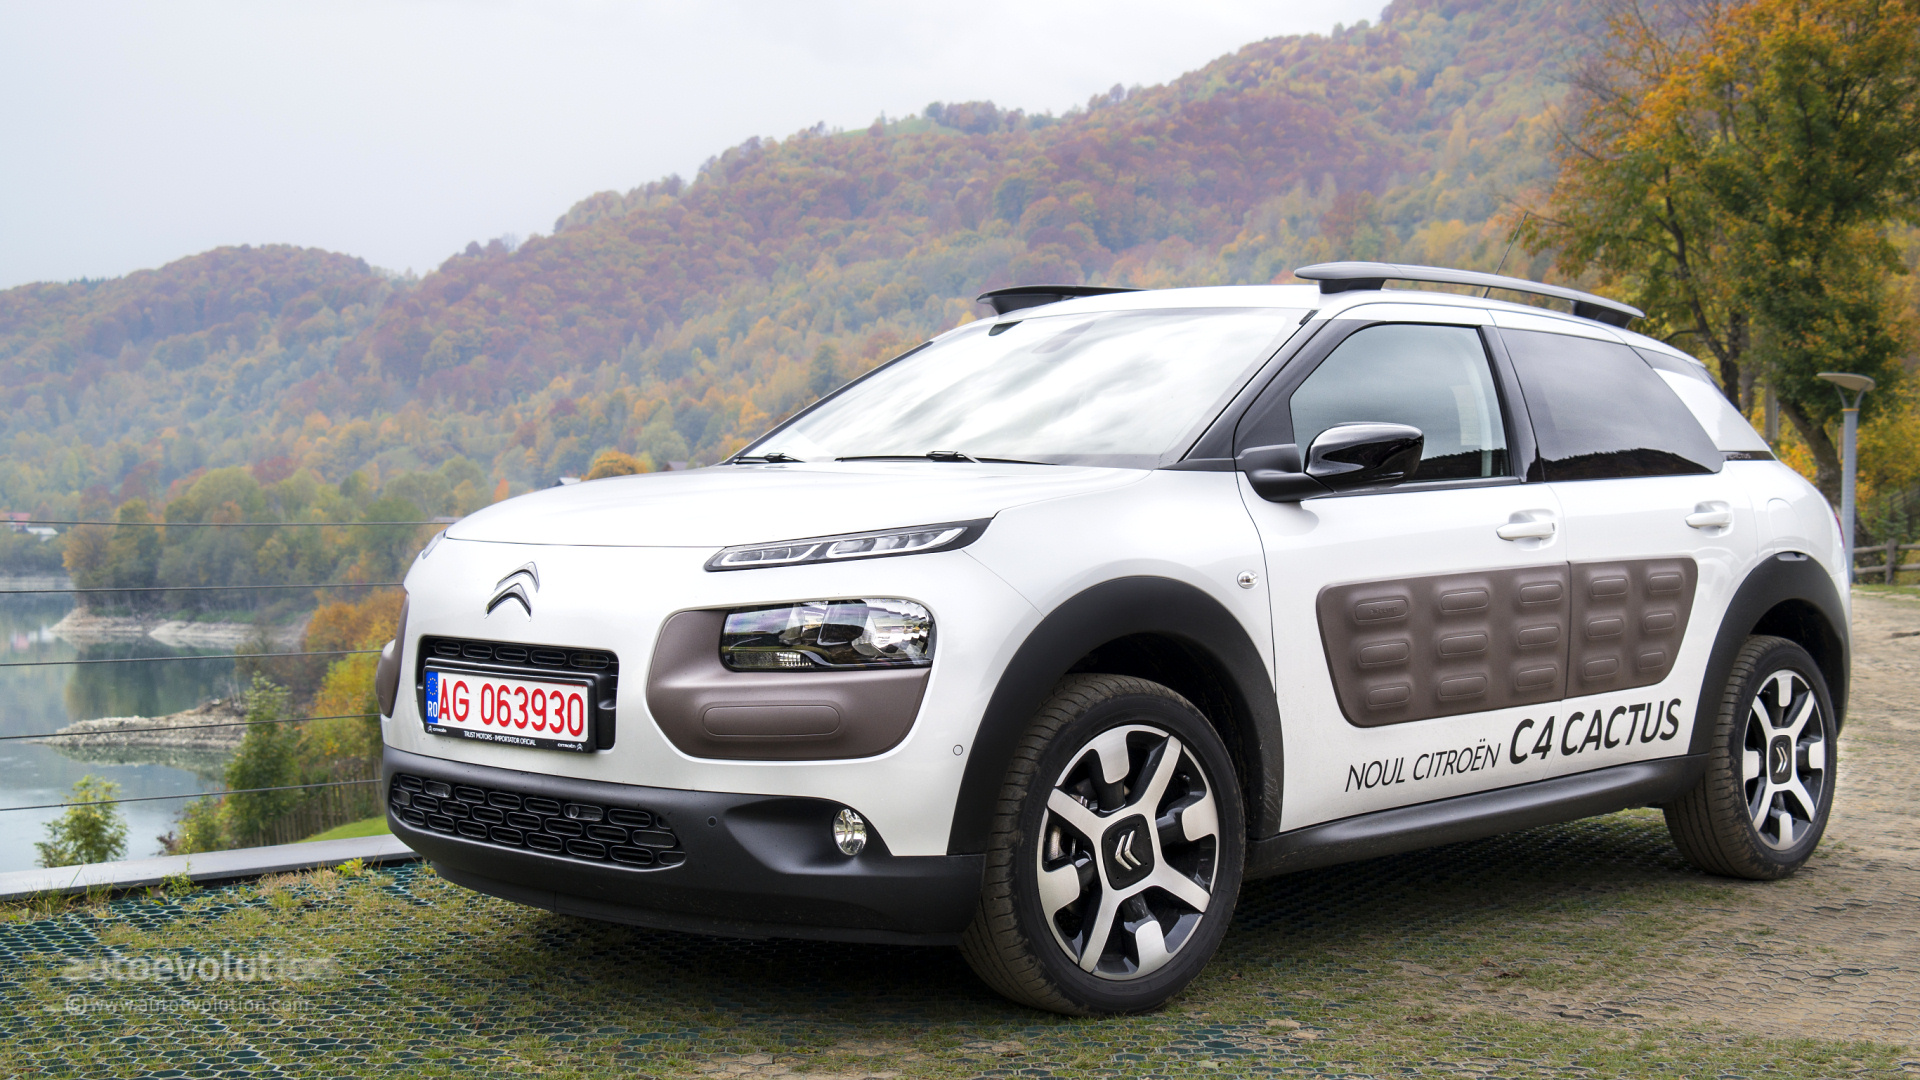 2017 citroen c4 cactus car photos catalog 2018. Black Bedroom Furniture Sets. Home Design Ideas